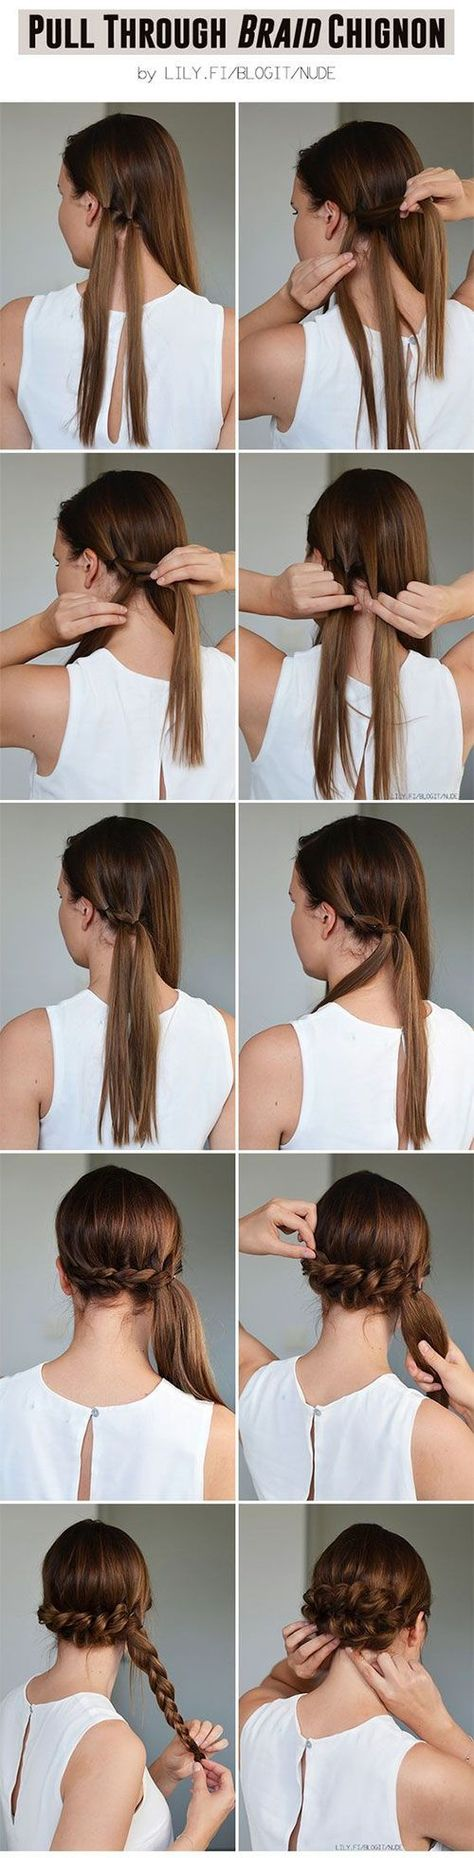 VISIT FOR MORE cool Pull Through Braid Chignon for a wedding or on a date by www.danazhaircuts The post cool Pull Through Braid Chignon for a wedding or on a date by www.danazha appeared first on kurzhaarfrisuren.